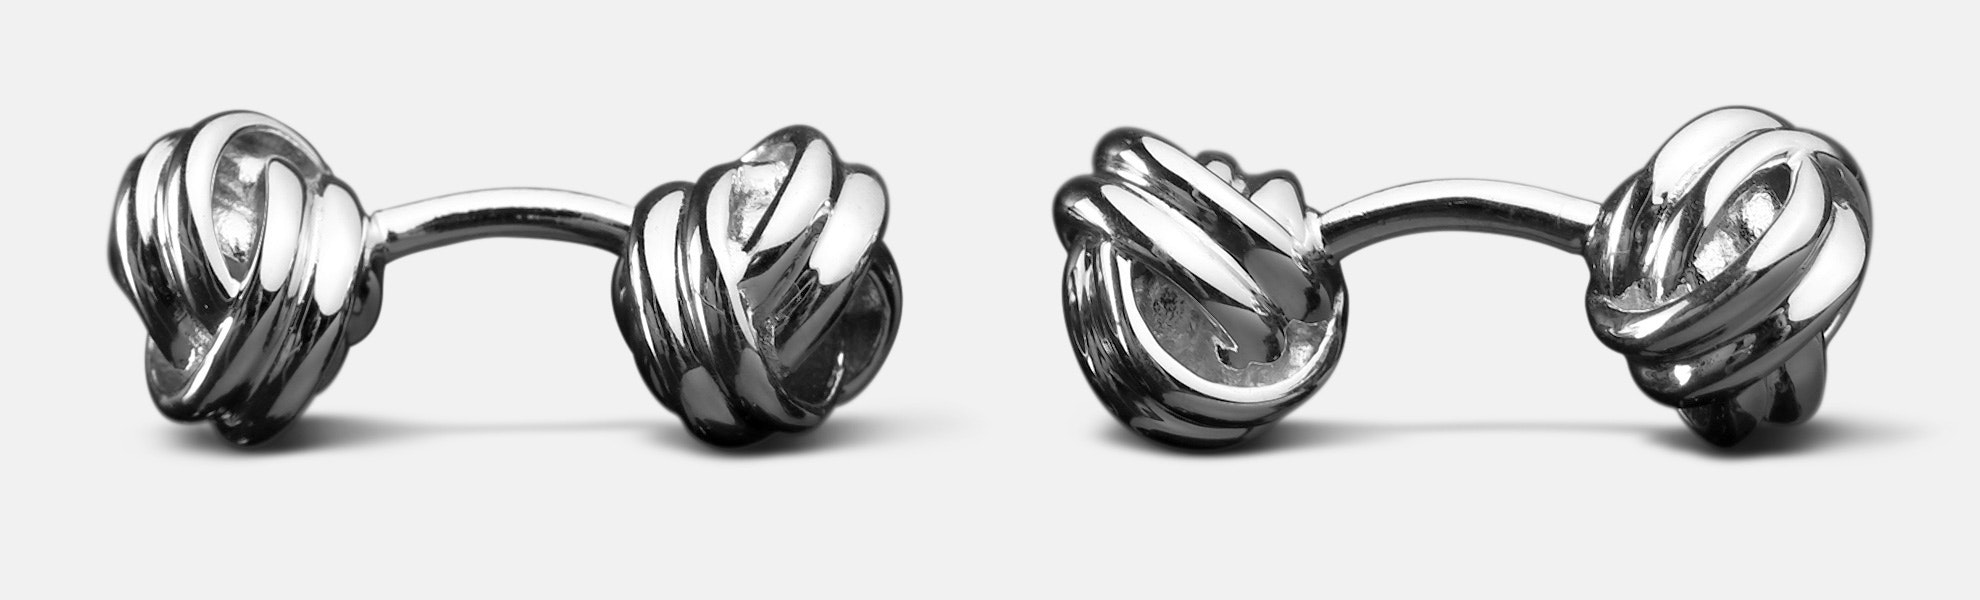 Kent Wang Sterling Silver Cuff Links